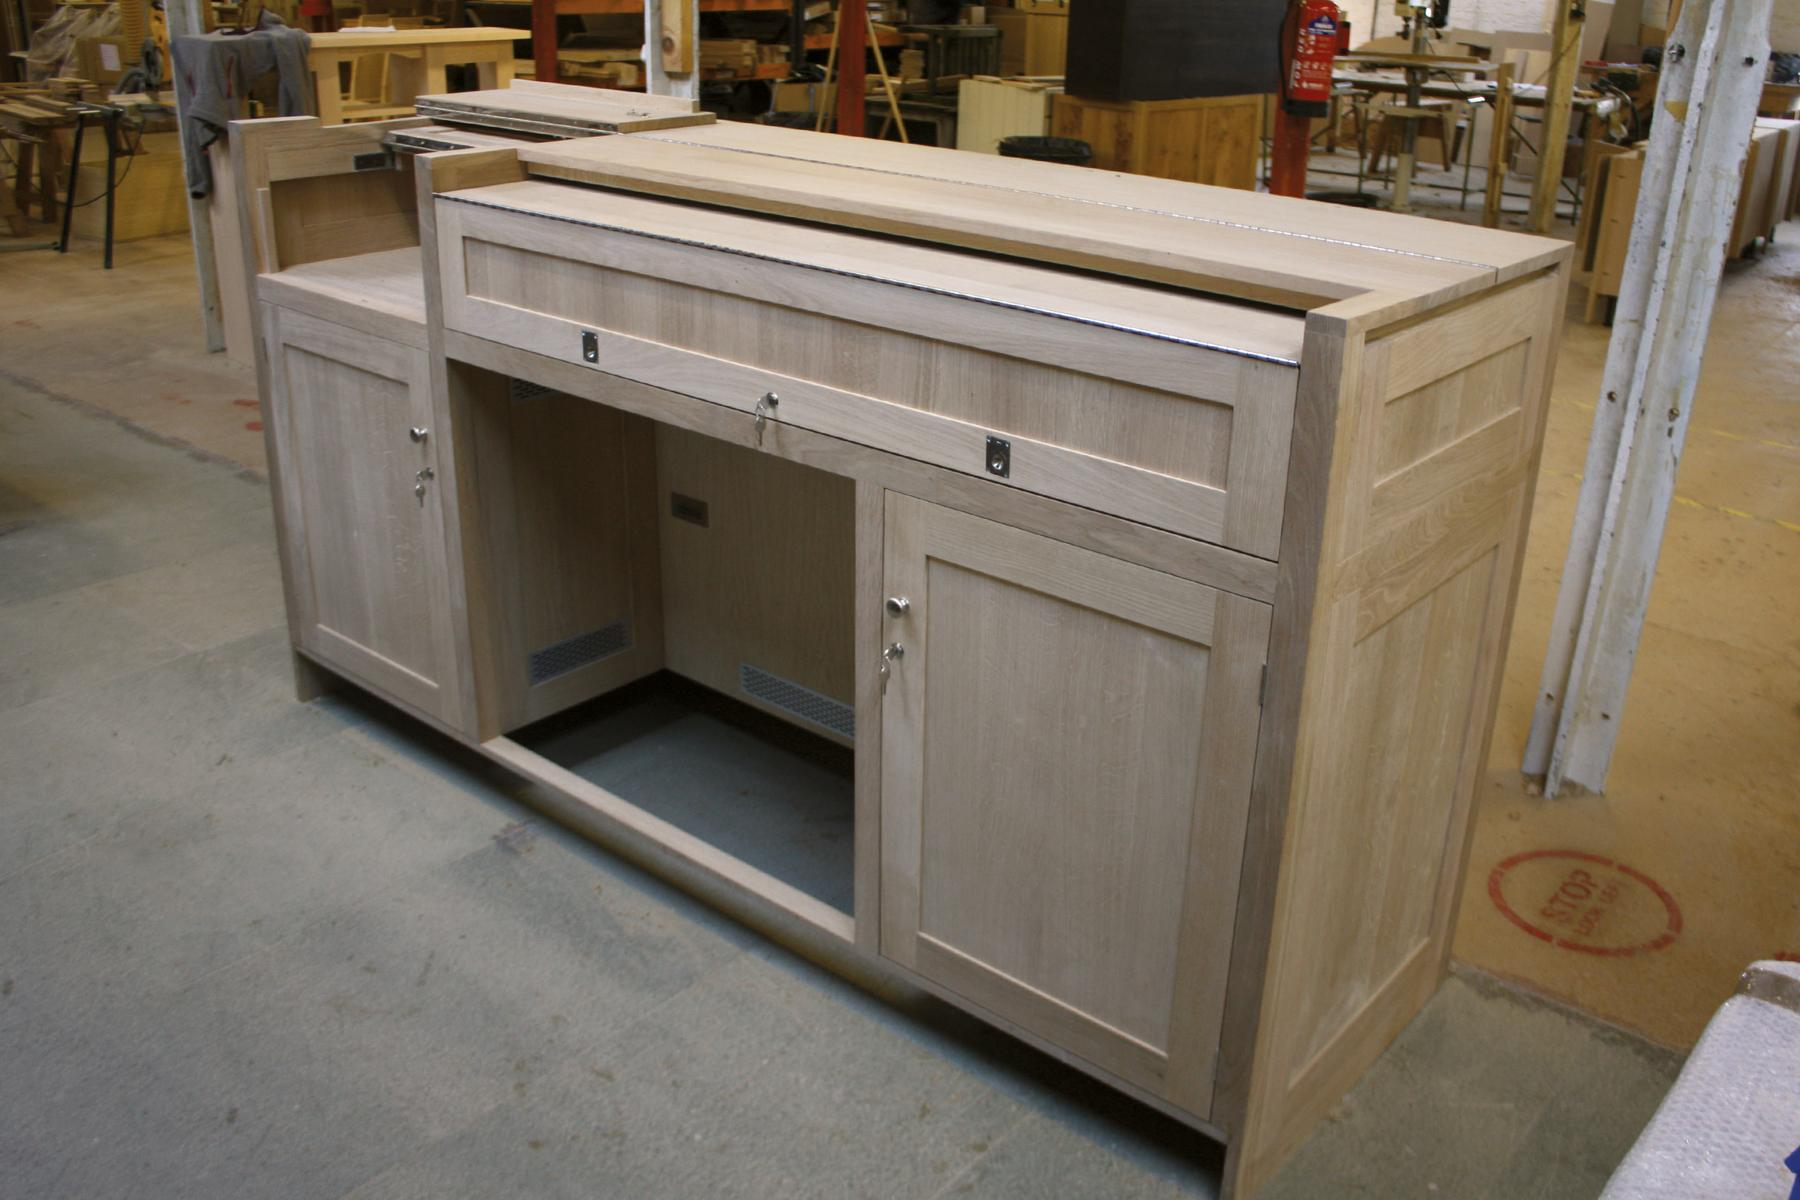 St Mary's Wallingford AV desk in workshop